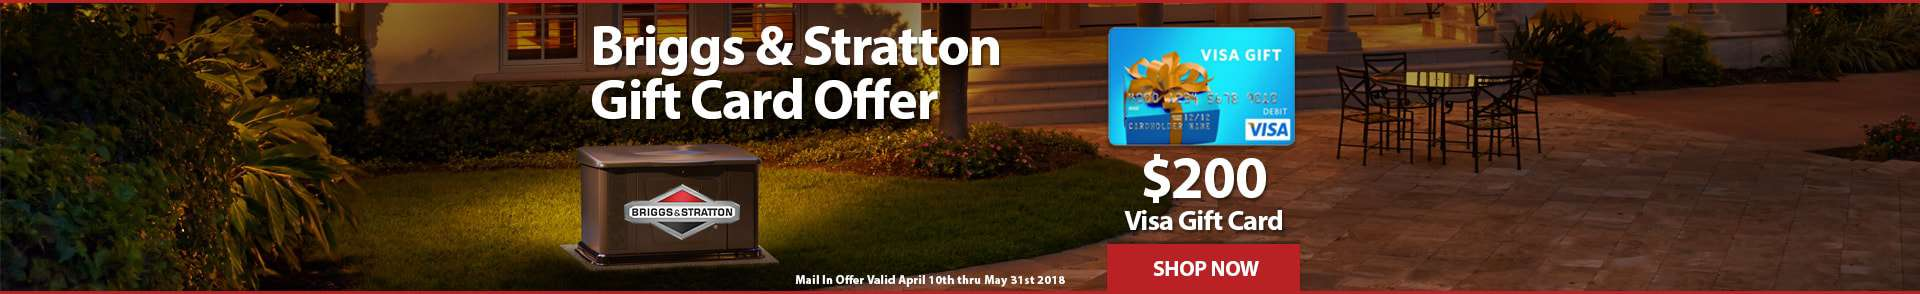 Briggs and Stratton 200 Dollar Visa Gift Card Offer